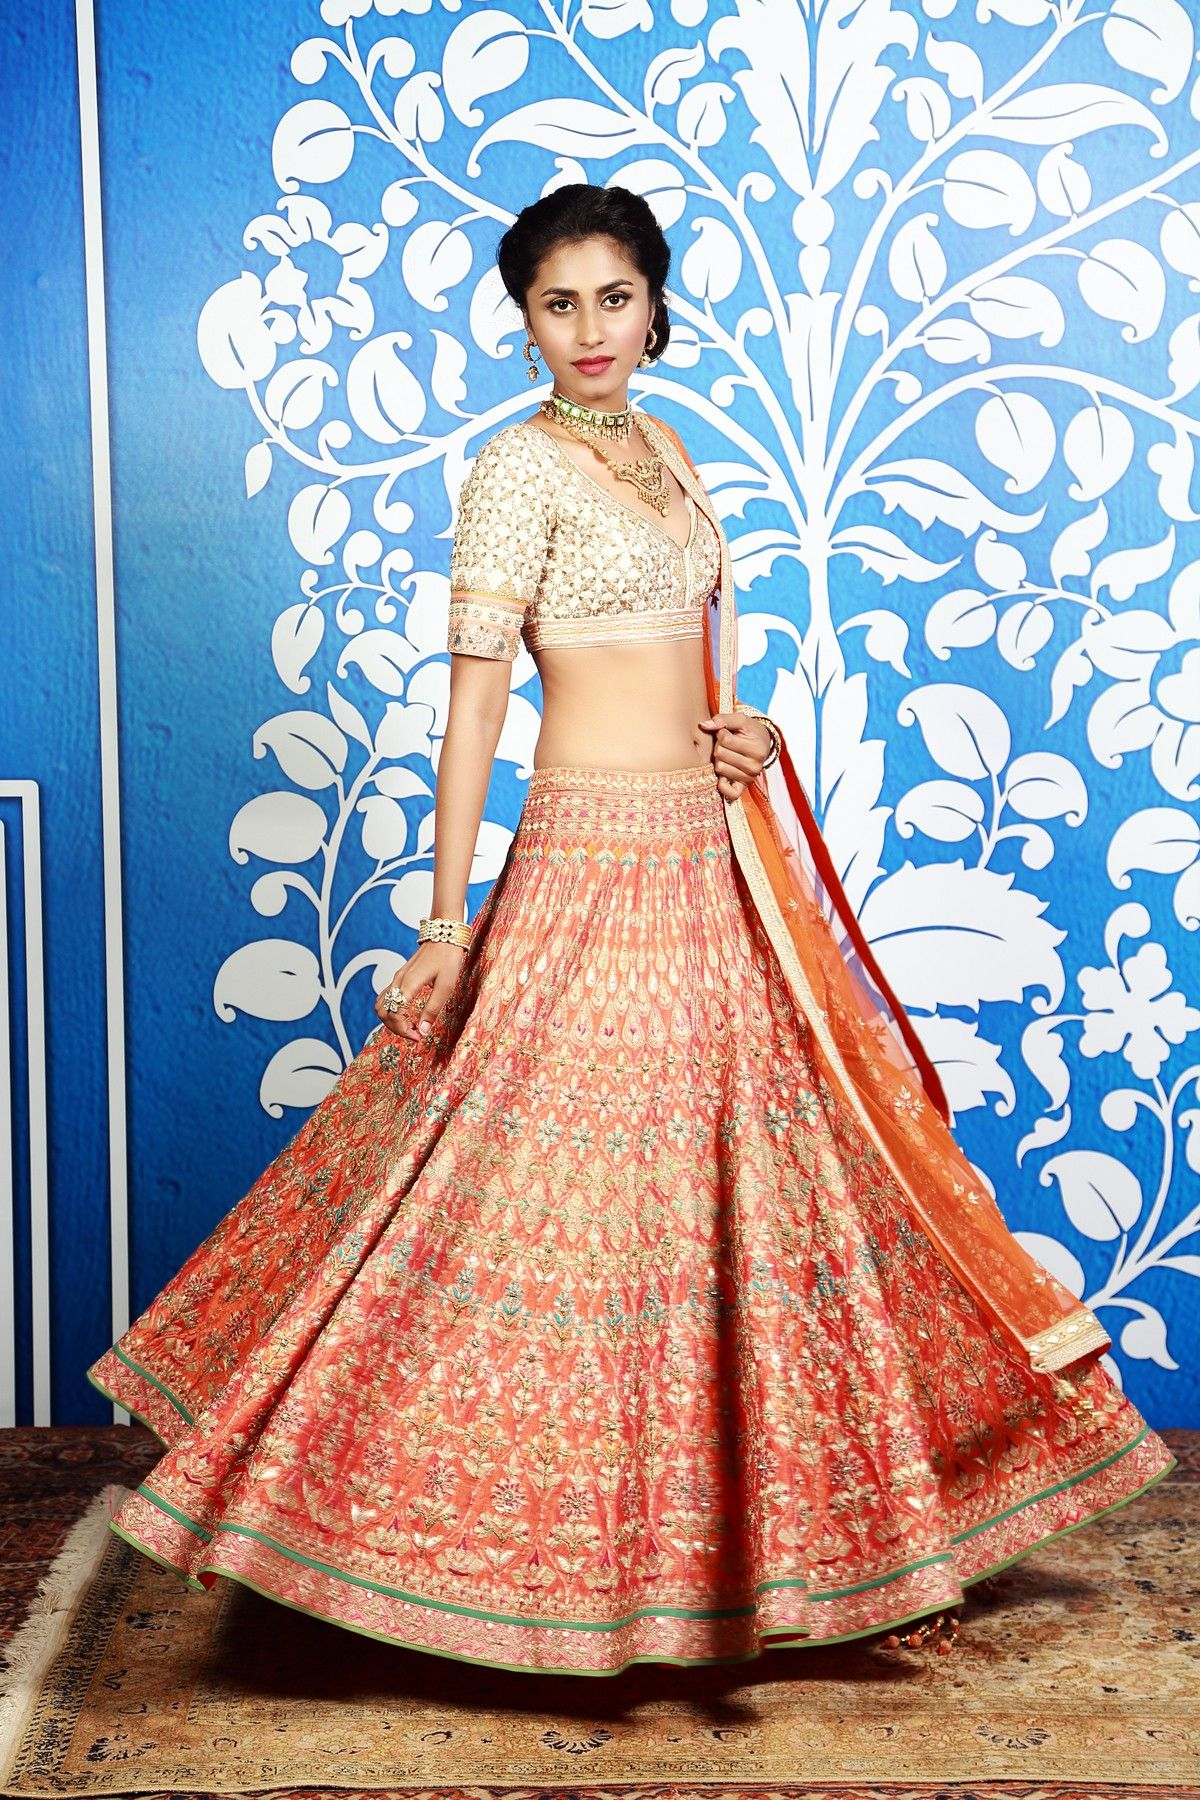 This lehenga is master piece with a glimpse of rajasthani culture